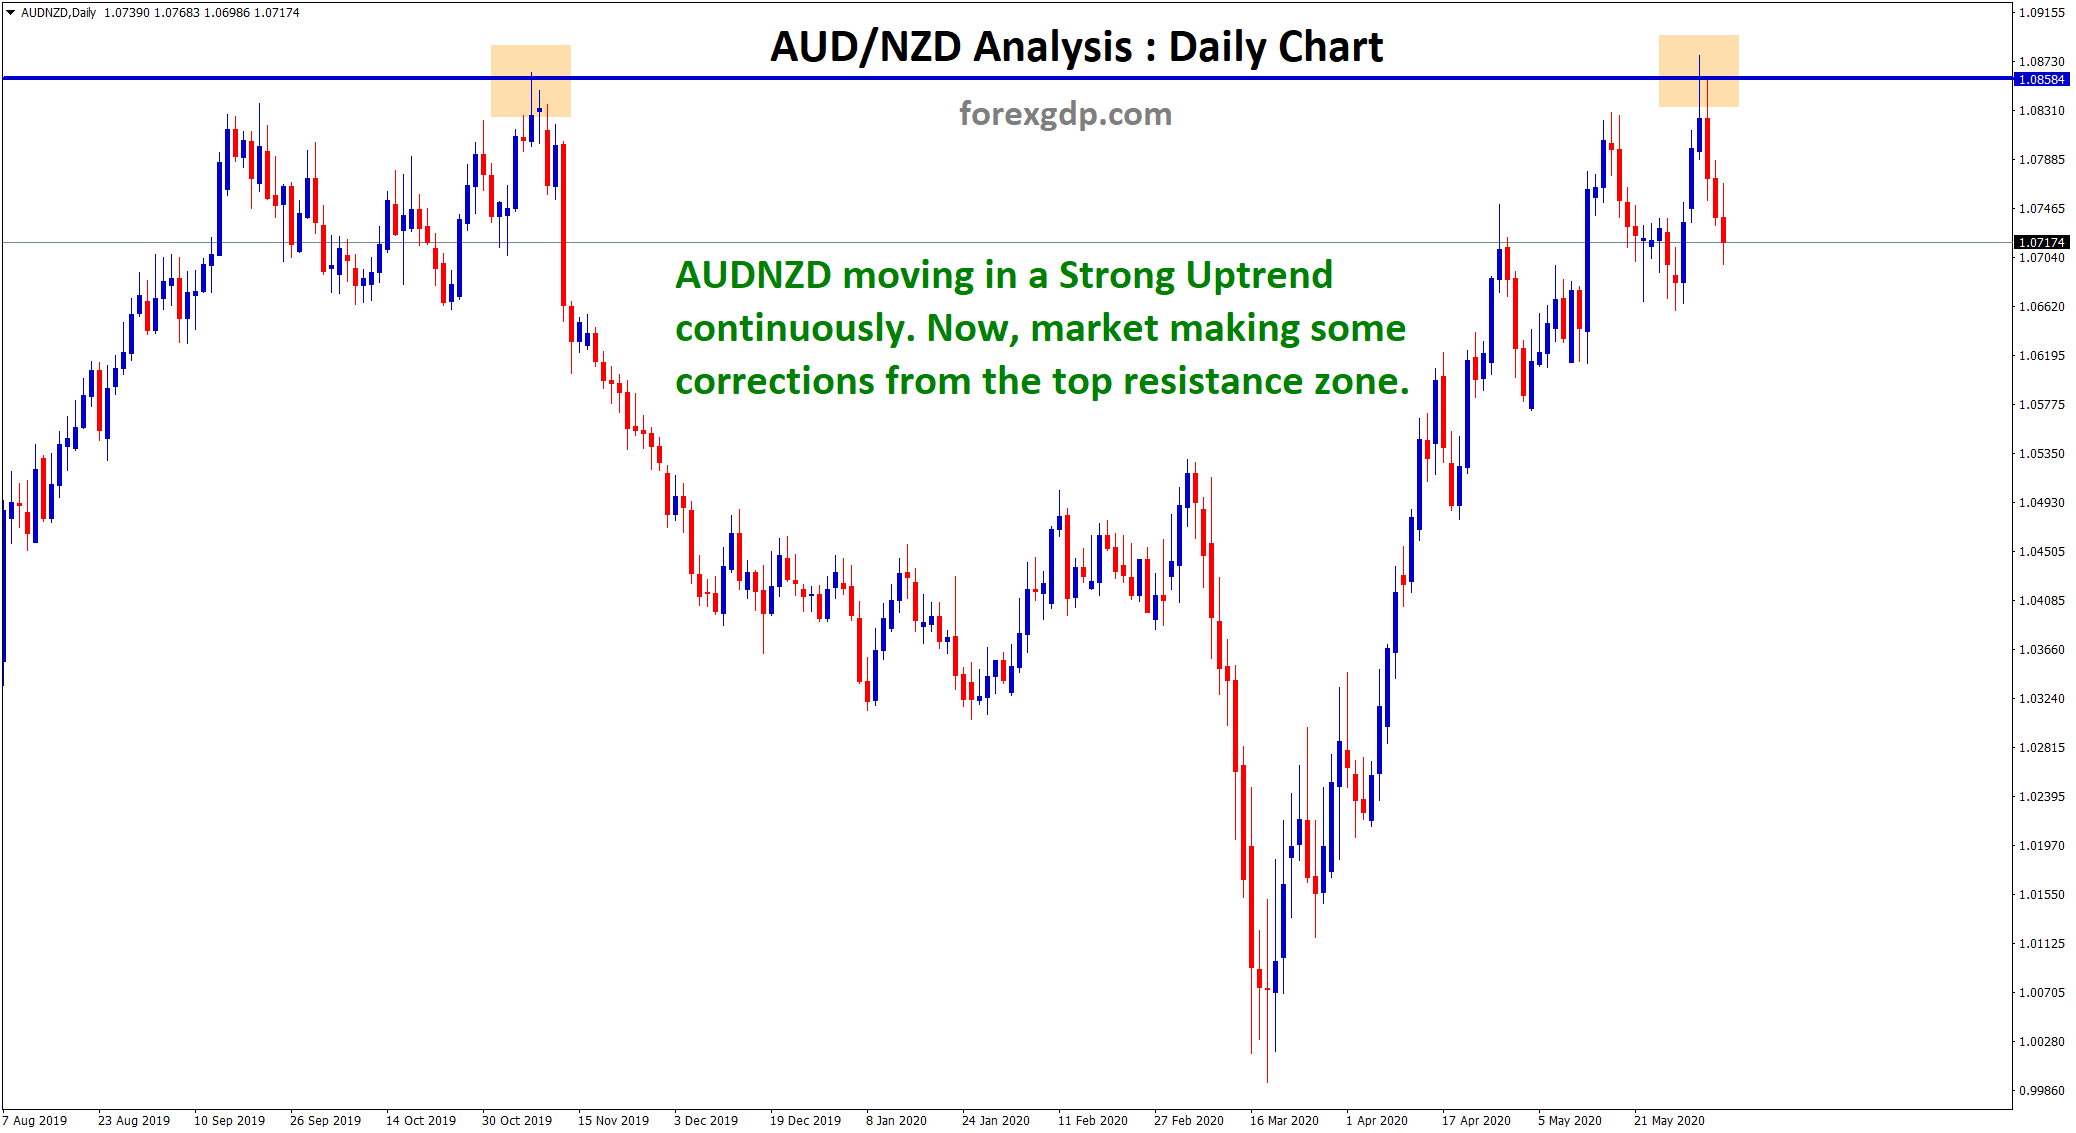 AUDNZD hits the top resistance zone and making some corrections